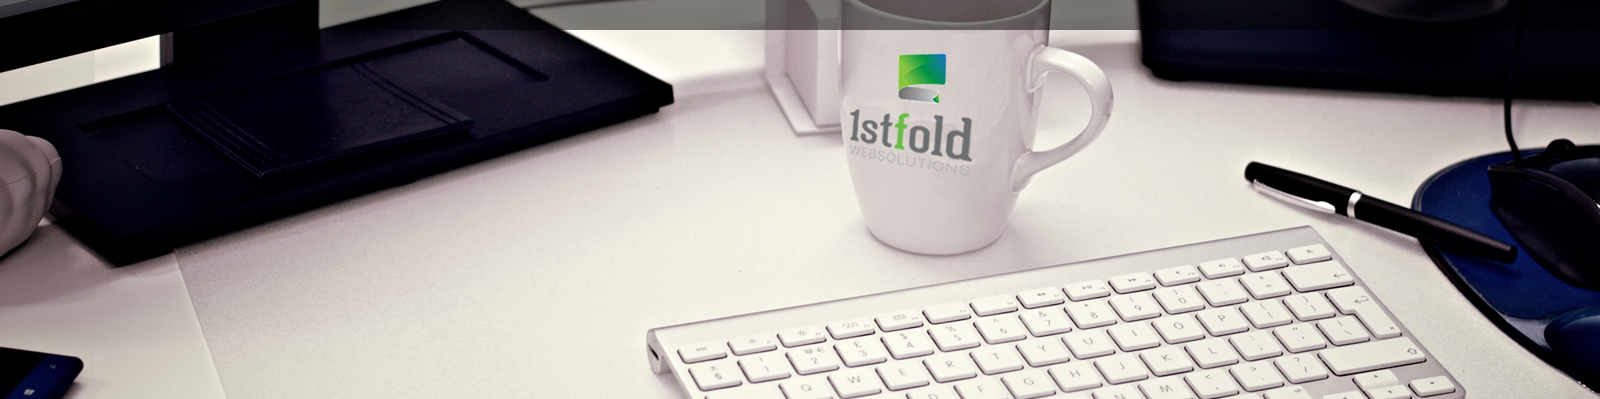 1stFold WebSolutions - Web Design and Development Company